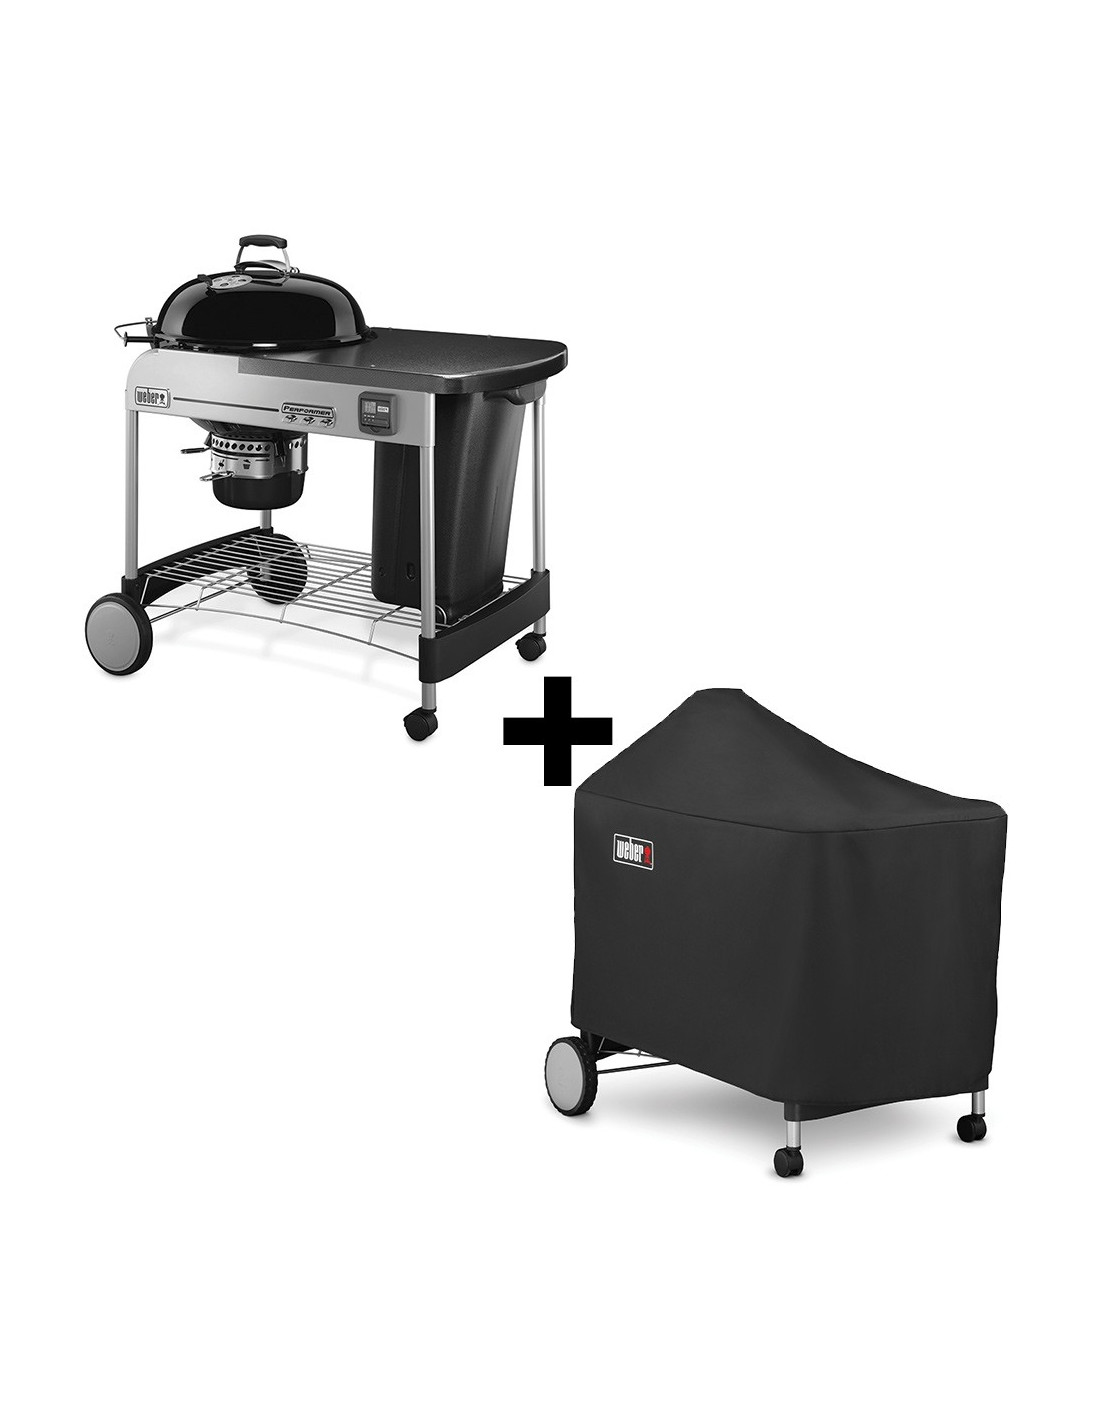 Barbecue weber performer premium 57 cm barbecue weber for Housse barbecue weber spirit